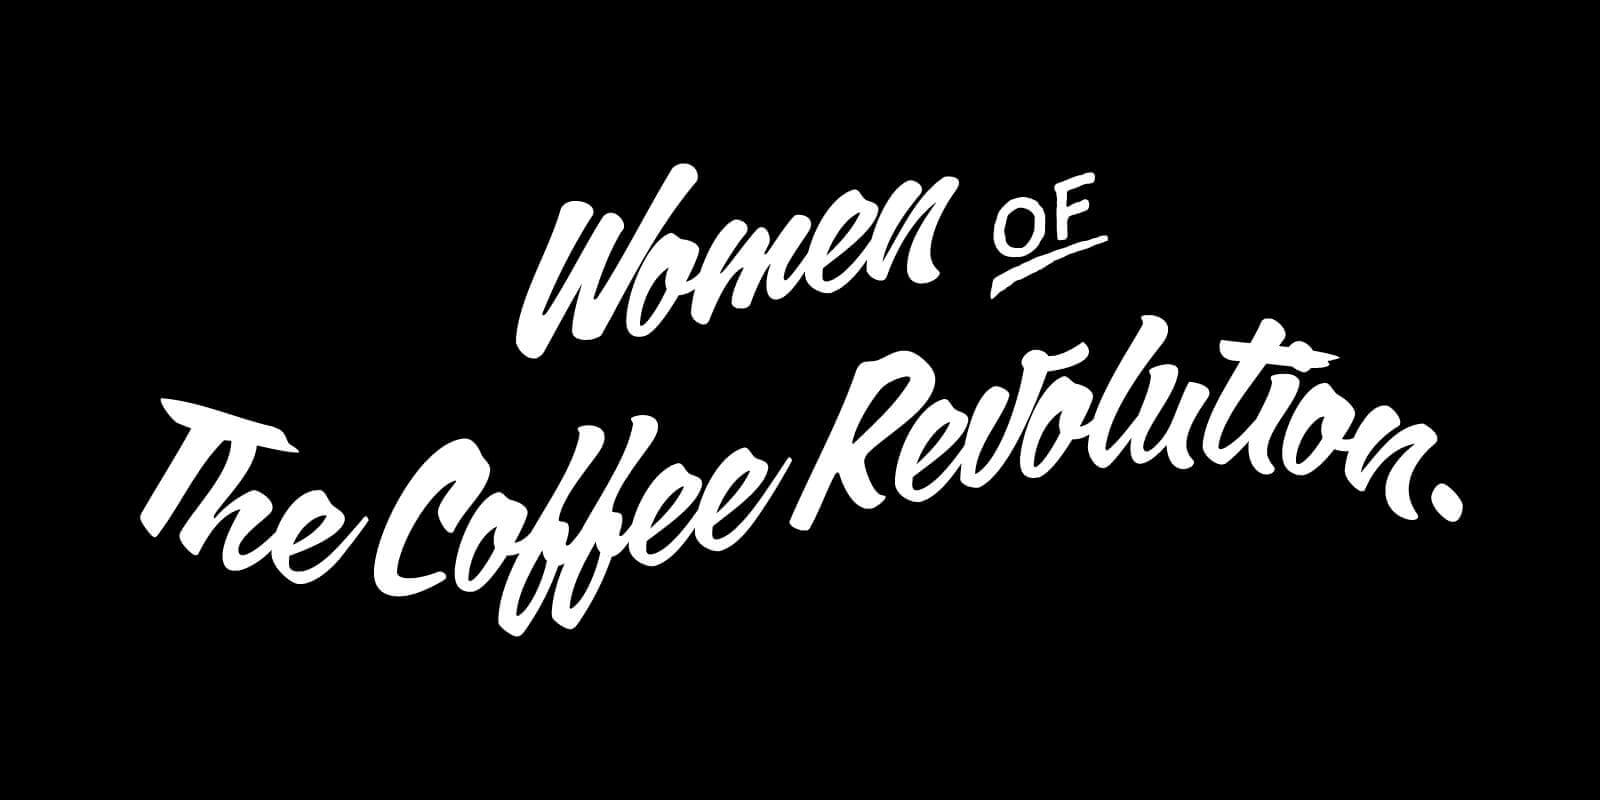 roasters/girls-who-grind-coffee/images/2acc-girls-who-grind-coffee.jpg